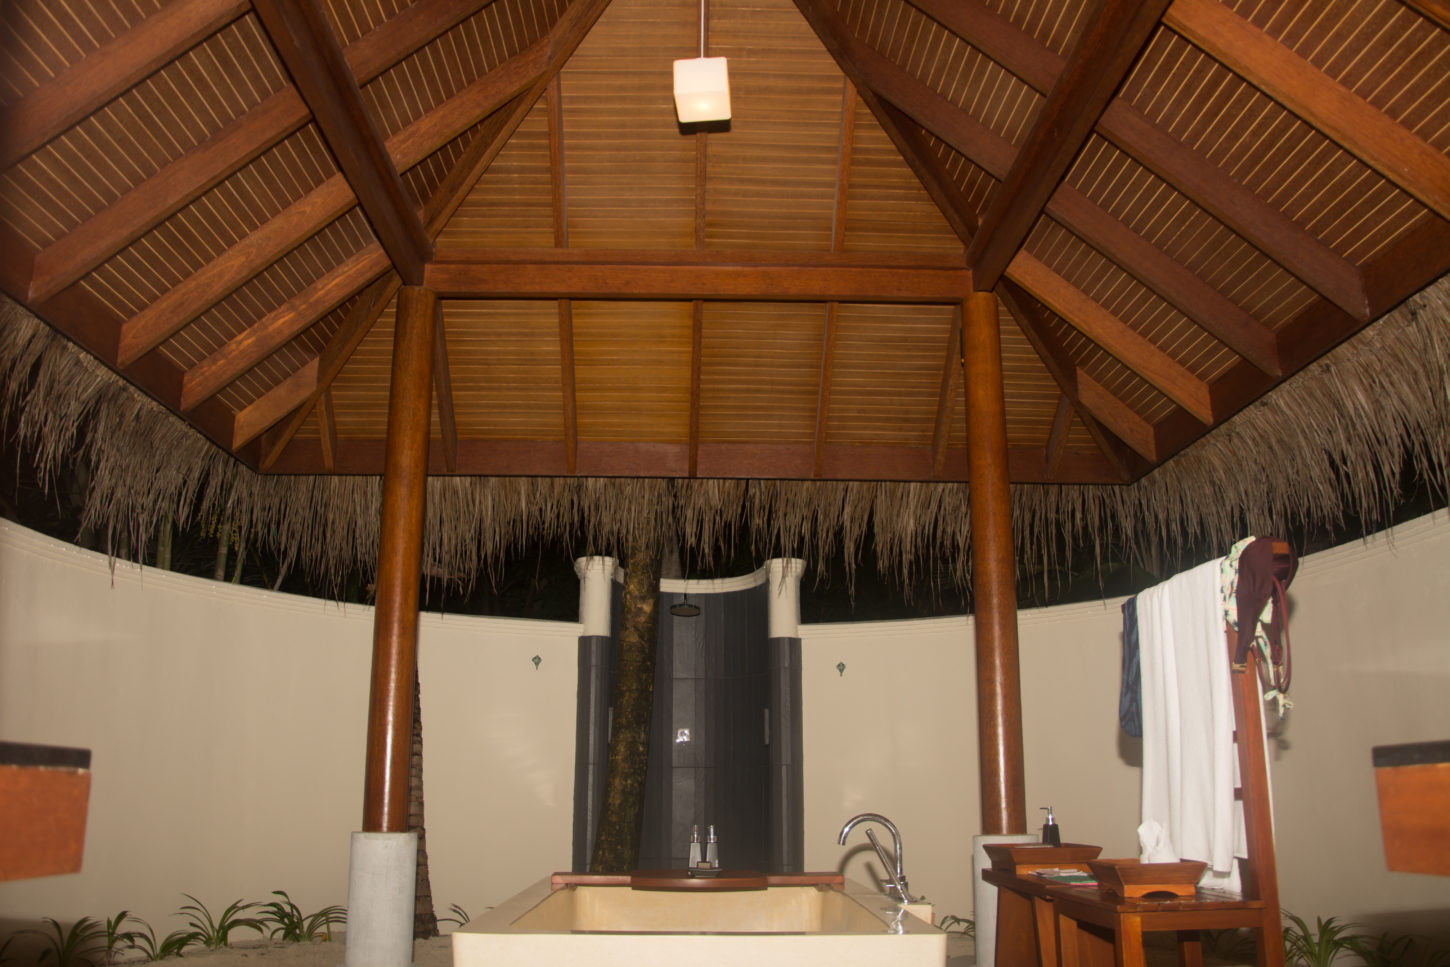 Outdoor washrooms for a true island life experience